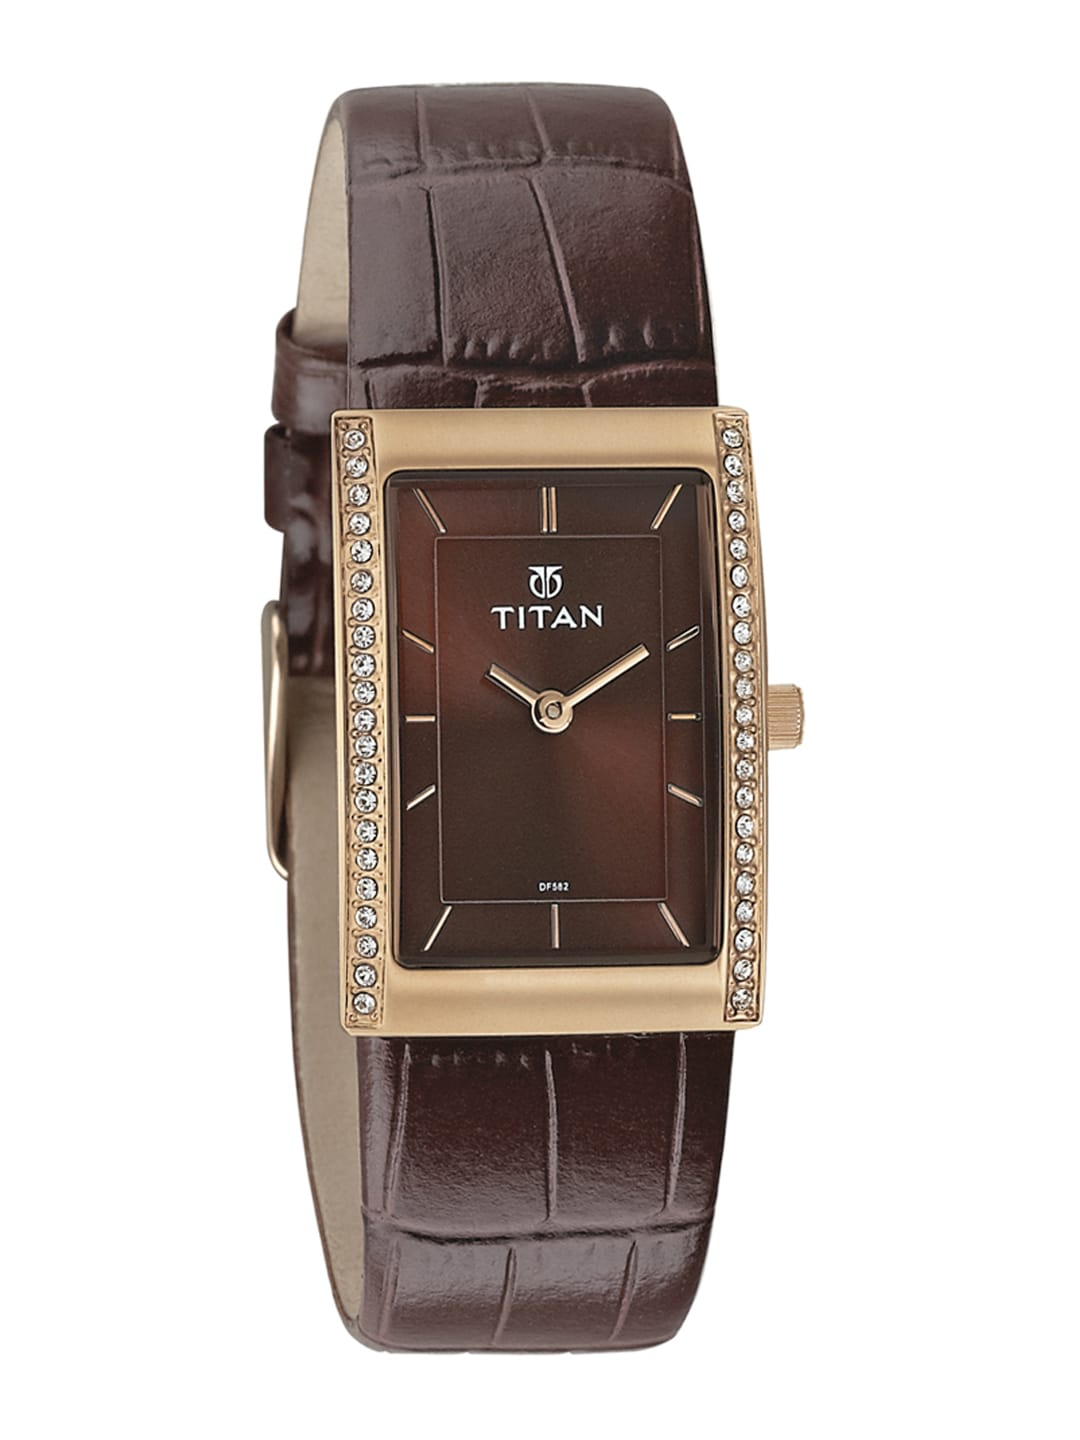 5a451f8626 Titan Stainless Steel Watches - Buy Titan Stainless Steel Watches online in  India